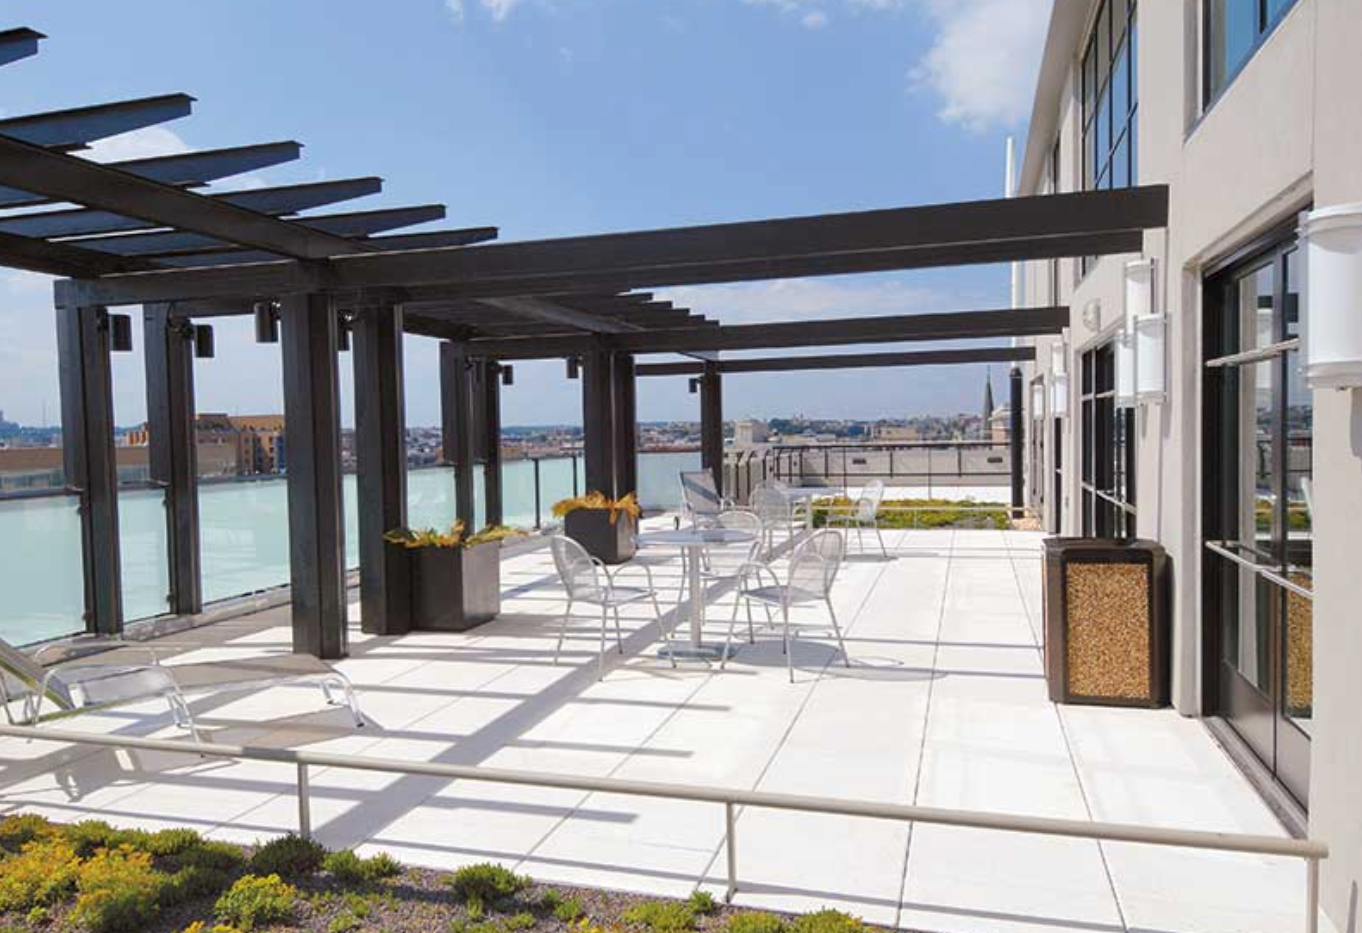 White Pavers Roof Deck